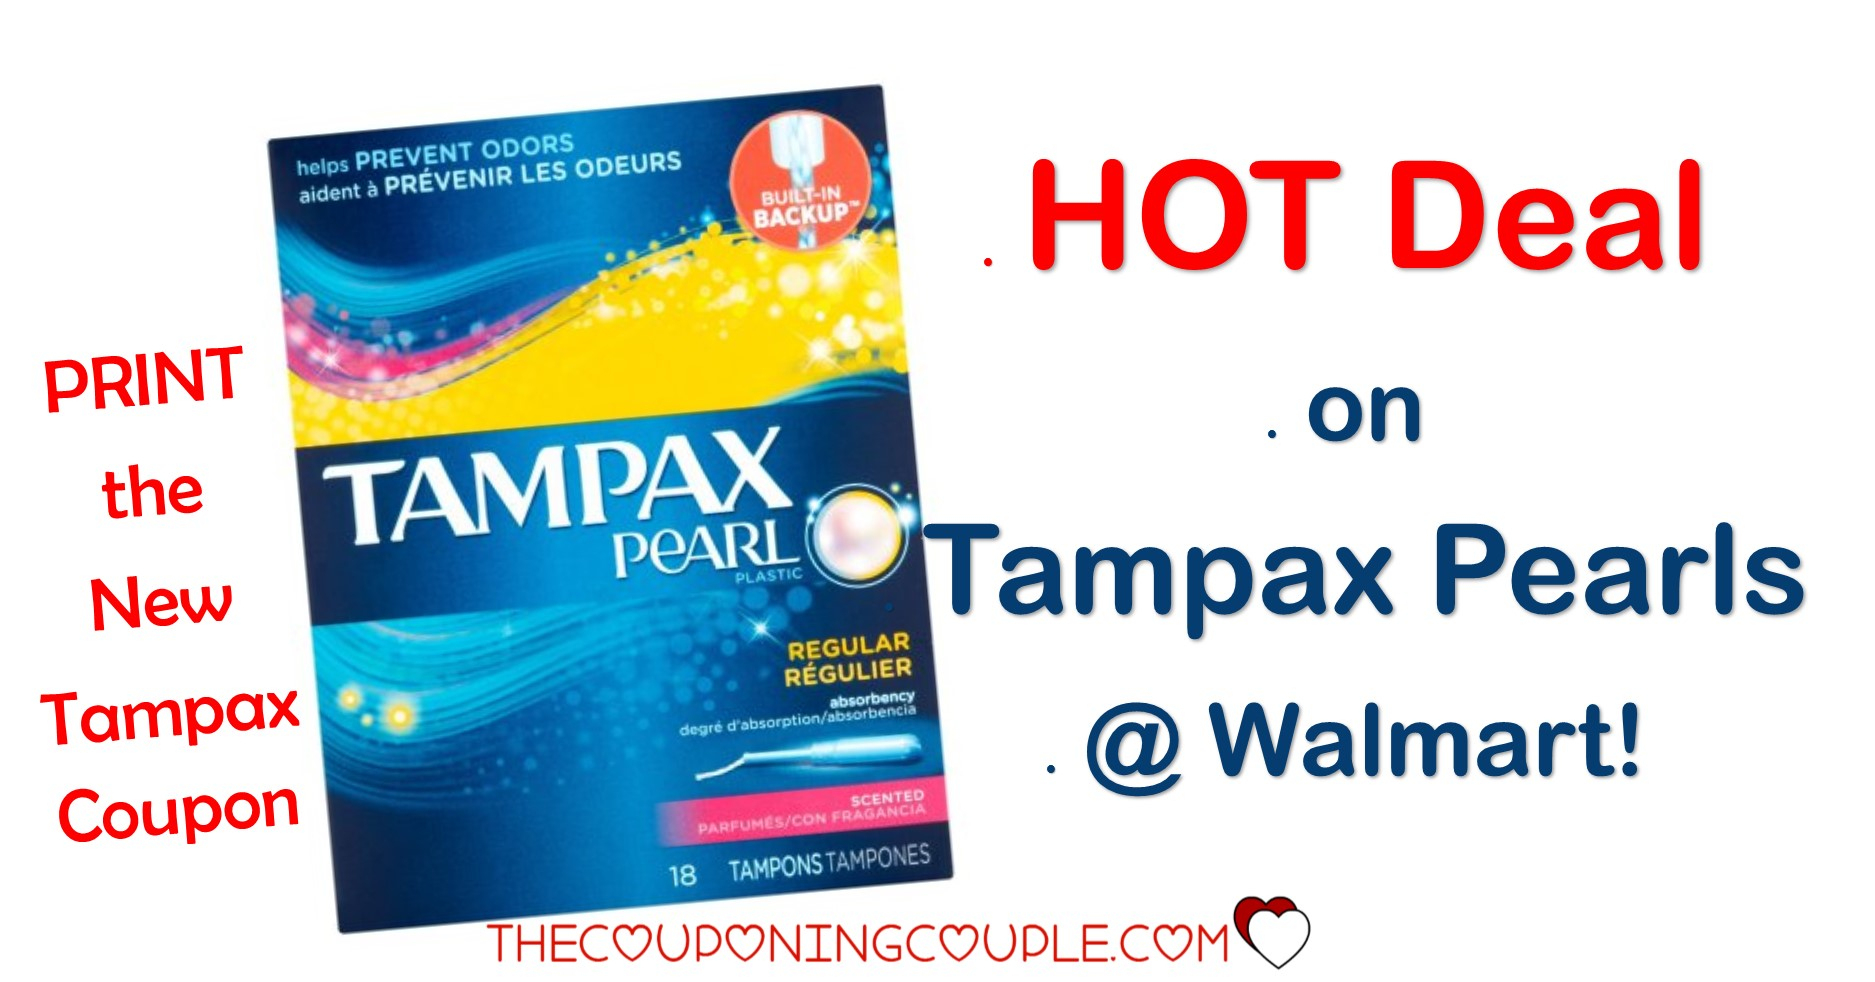 New Tampax Coupon = Hot Deal On Tampax Pearls @ Walmart! Only $2.47! - Free Printable Food Coupons For Walmart